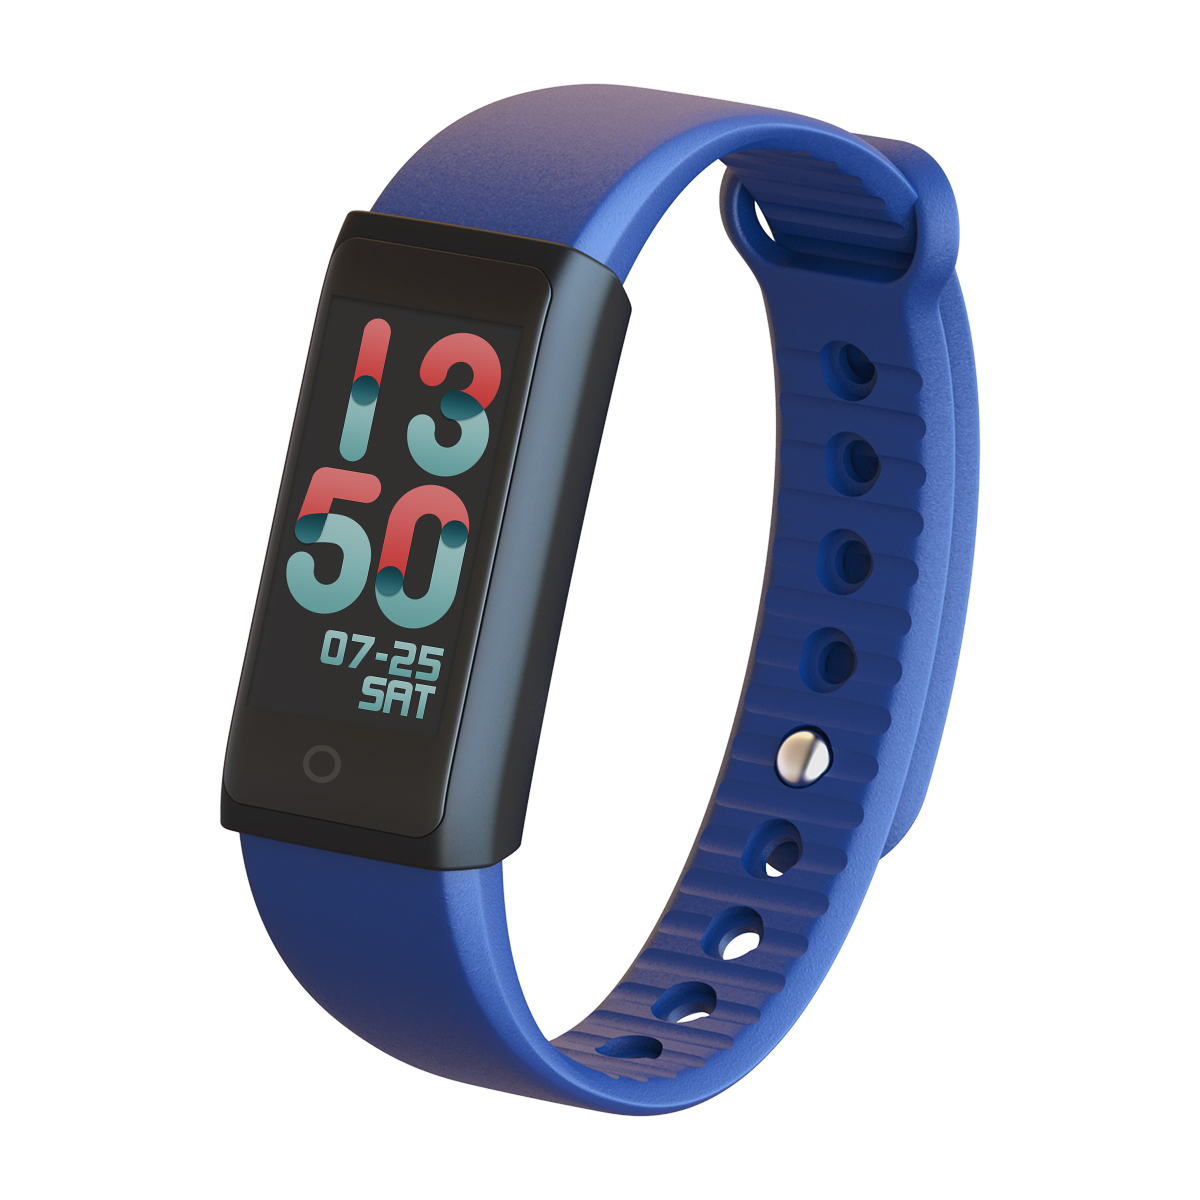 Indigi X6s Smart Fitness Tracker w/ Dynamic Heart Rate Monitor + Calorie Counter + OLED Screen + SMS/Call Alerts (iOS &